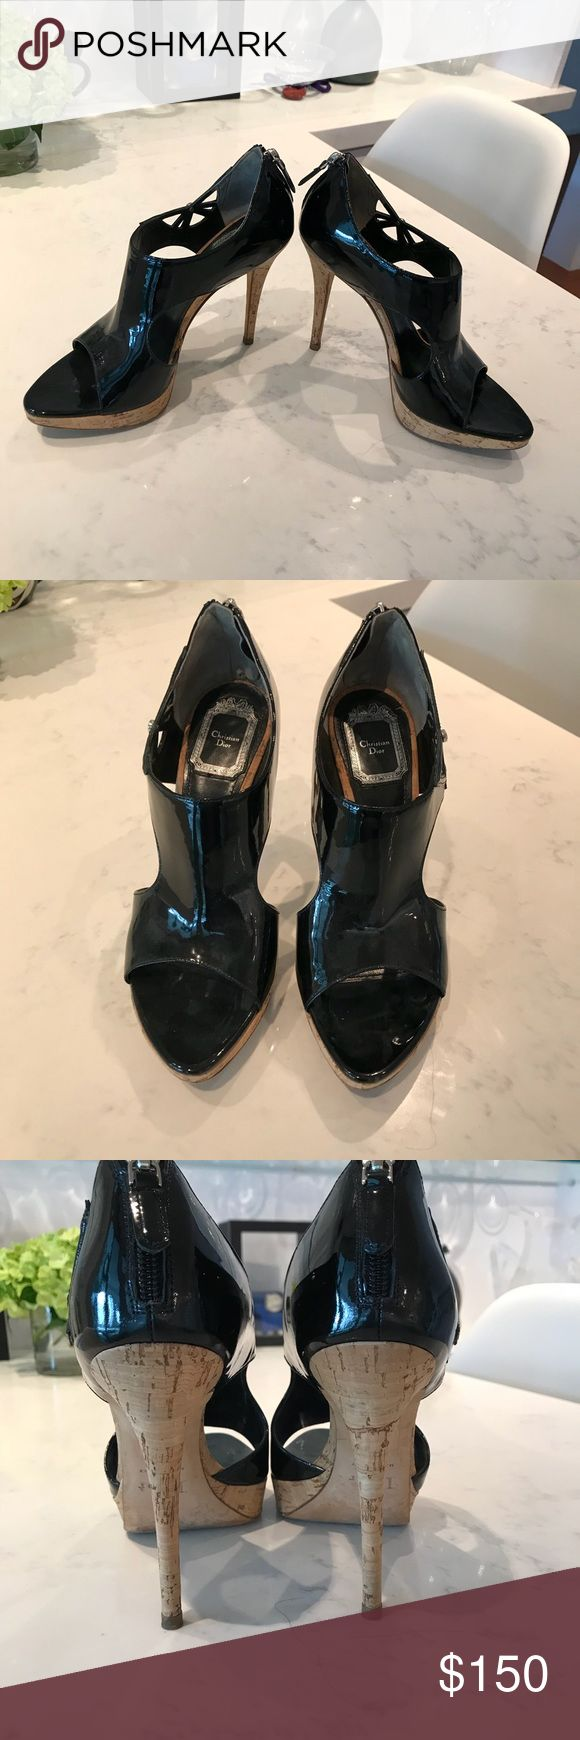 Christian Dior Open Toe High Heels. Sexy and beautiful Christian Dior black enamel heels with pretty open pattern on the sides. Only worn one time. In great condition! 1 inch platform, 4 inches heels Christian Dior Shoes Heels